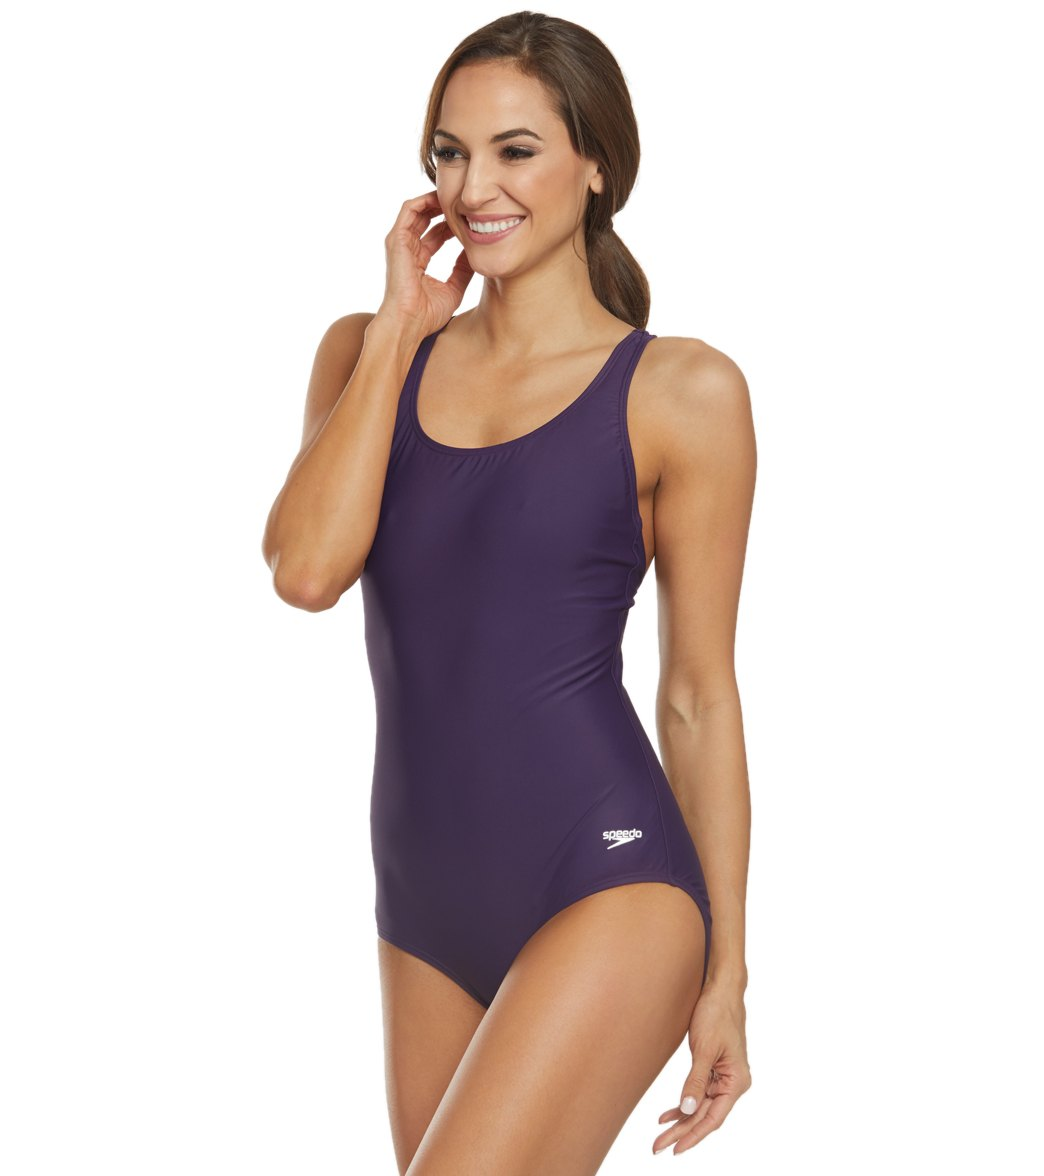 83ff911d5d Speedo Moderate Ultraback One Piece Swimsuit at SwimOutlet.com ...